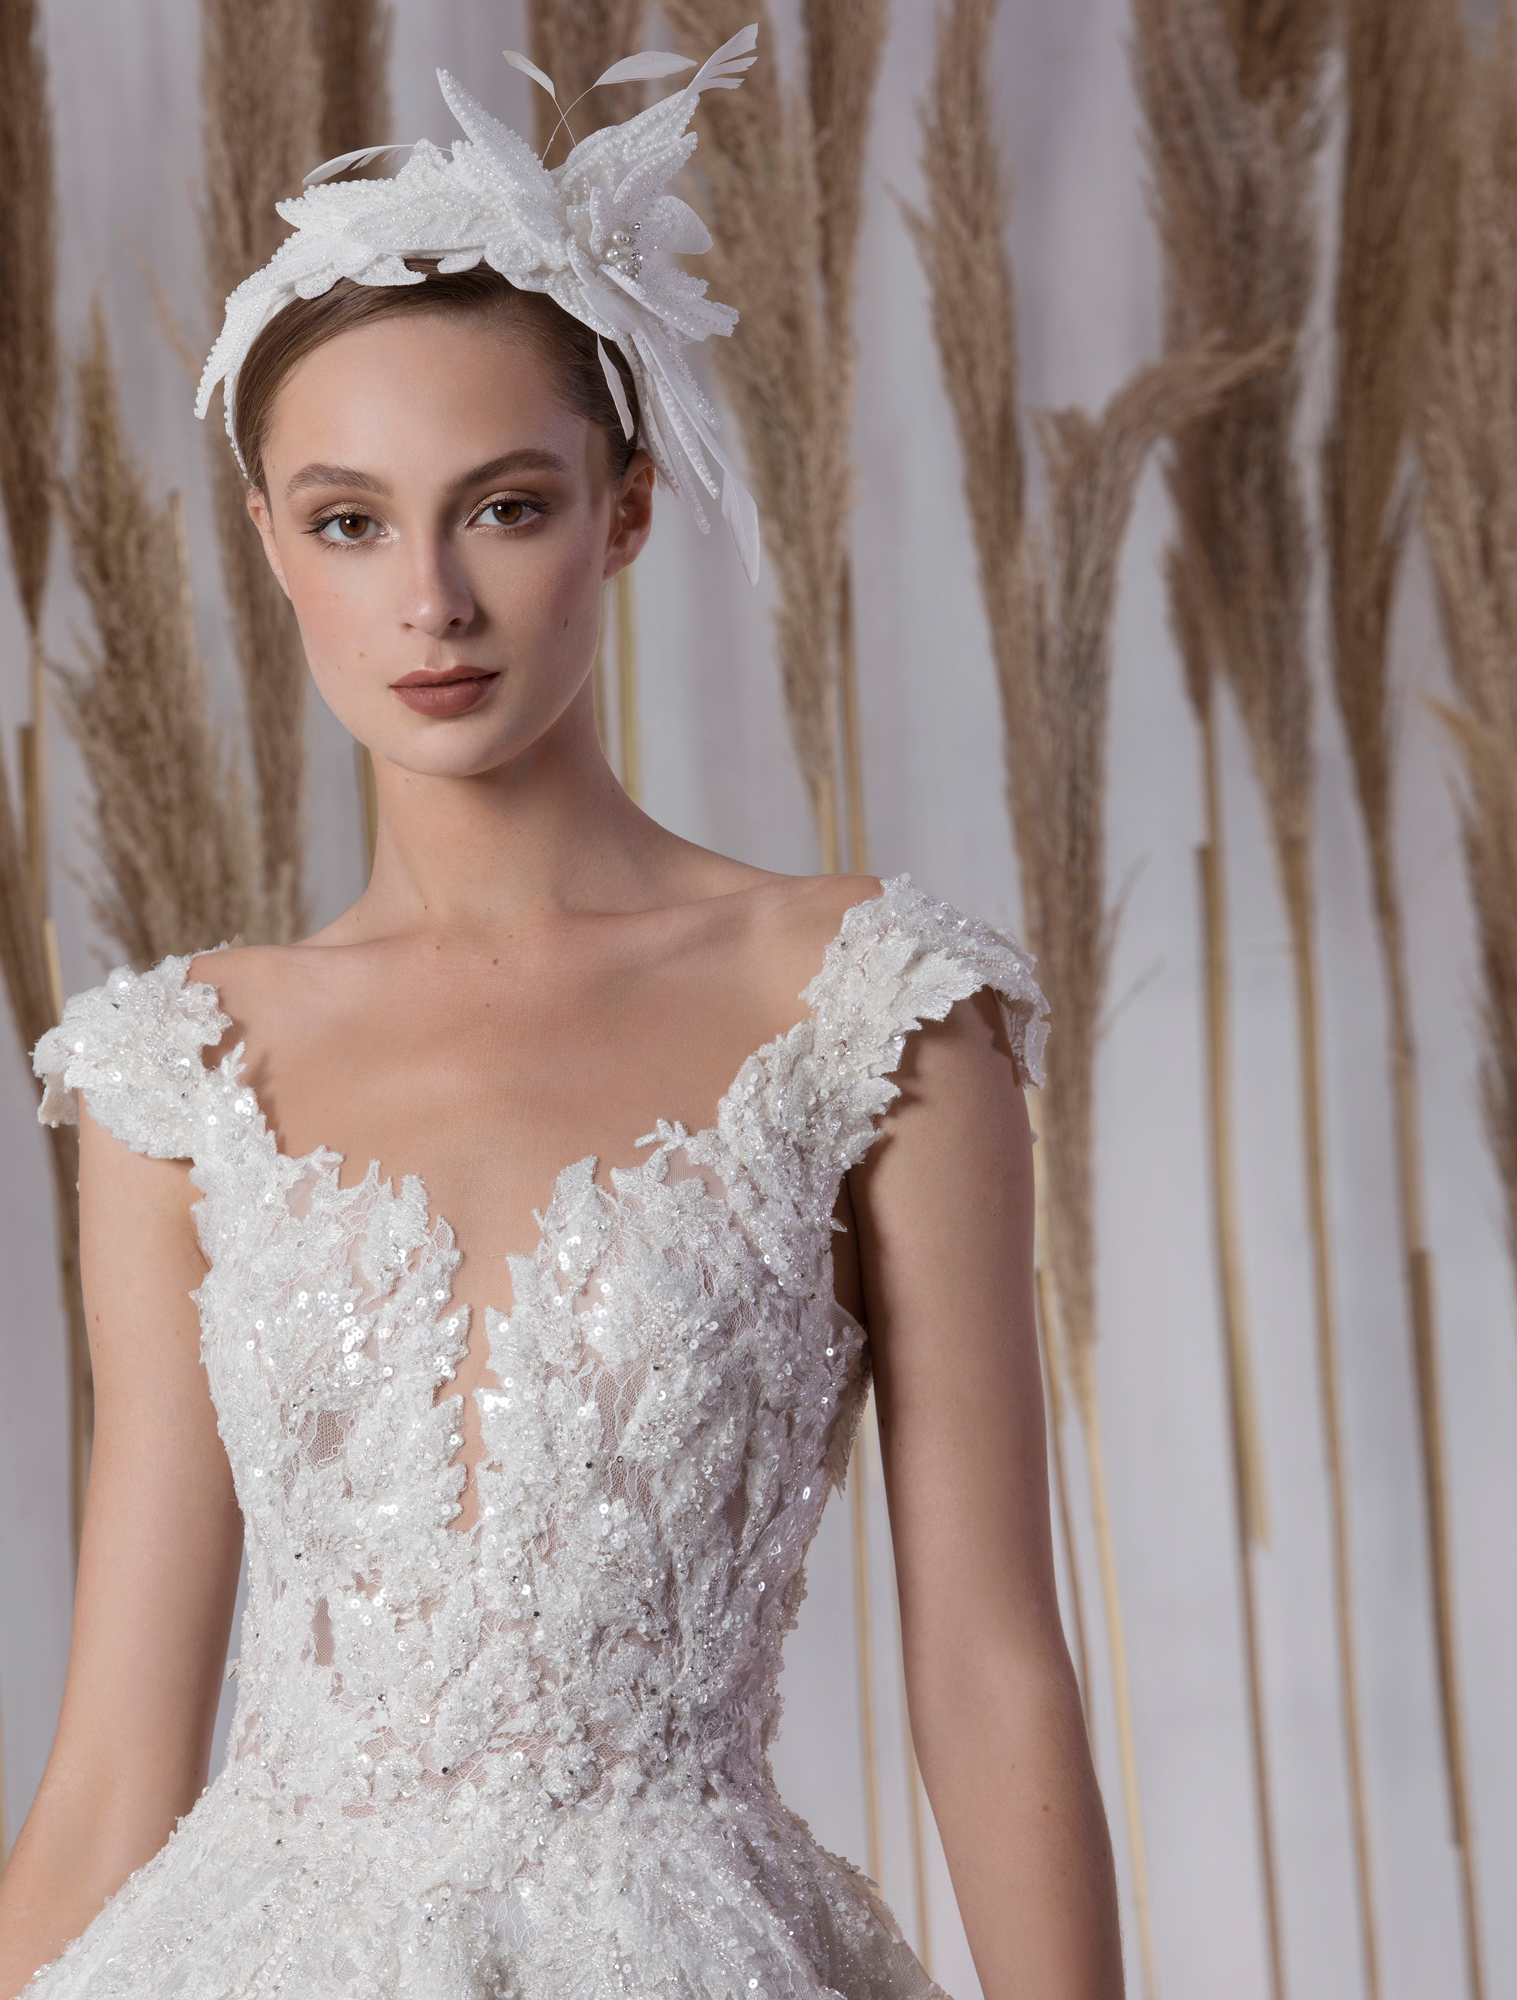 Viviane by Tony Ward from the La Mariee Collection